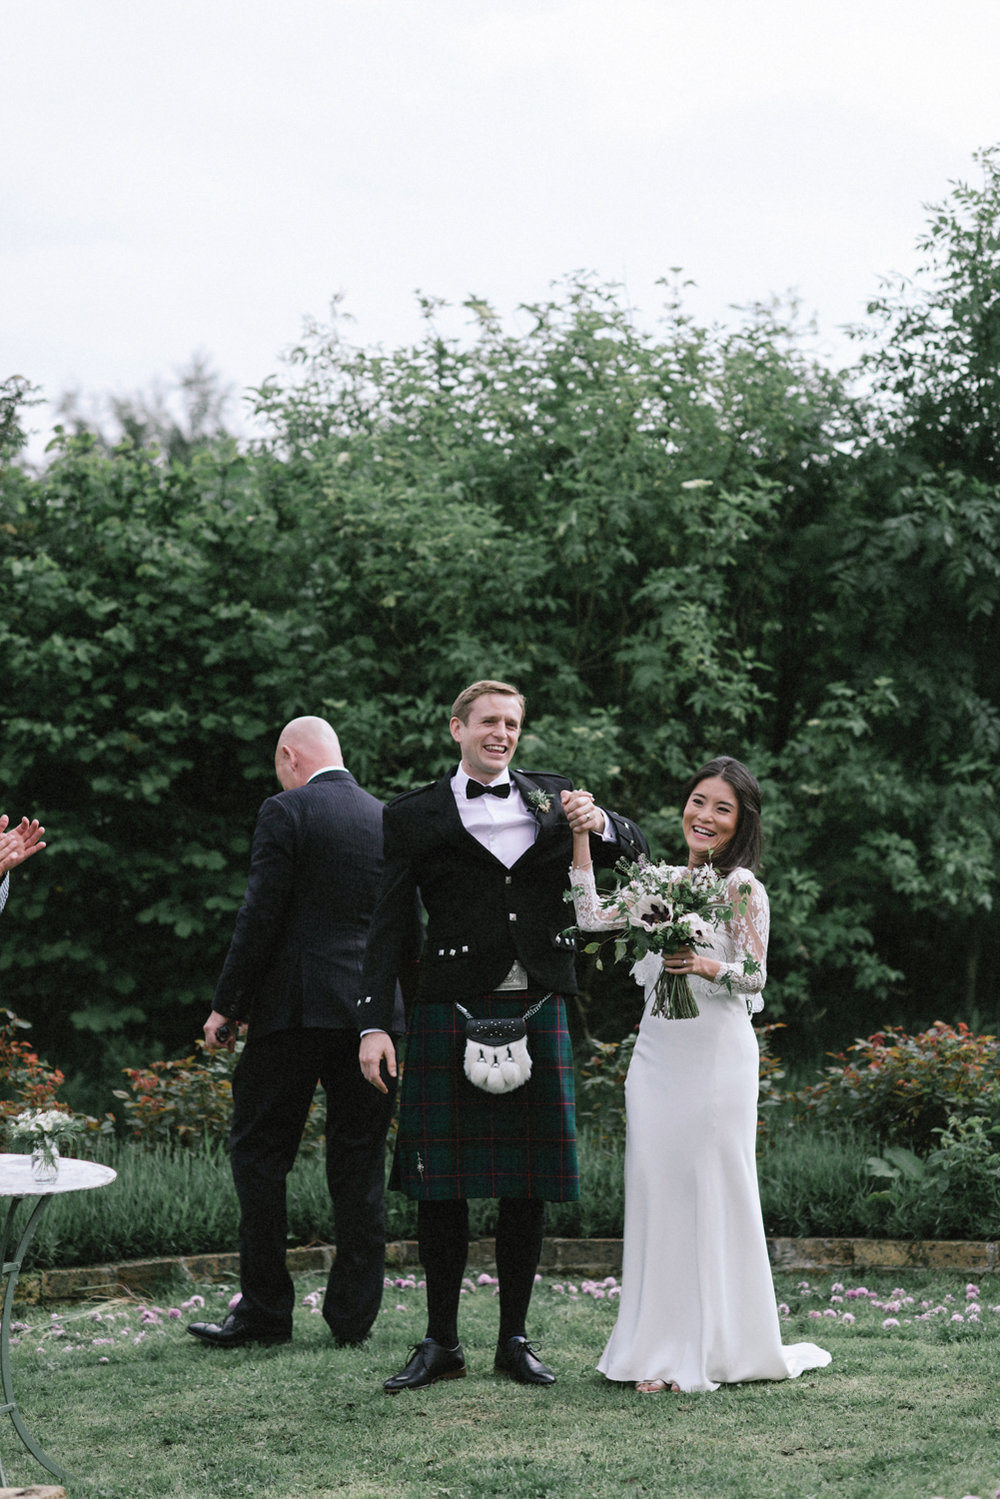 The_Secret_Herb_Garden_Edinburgh_Nikki_Leadbetter_Photography_Alternative_Wedding_Photography-462.jpg